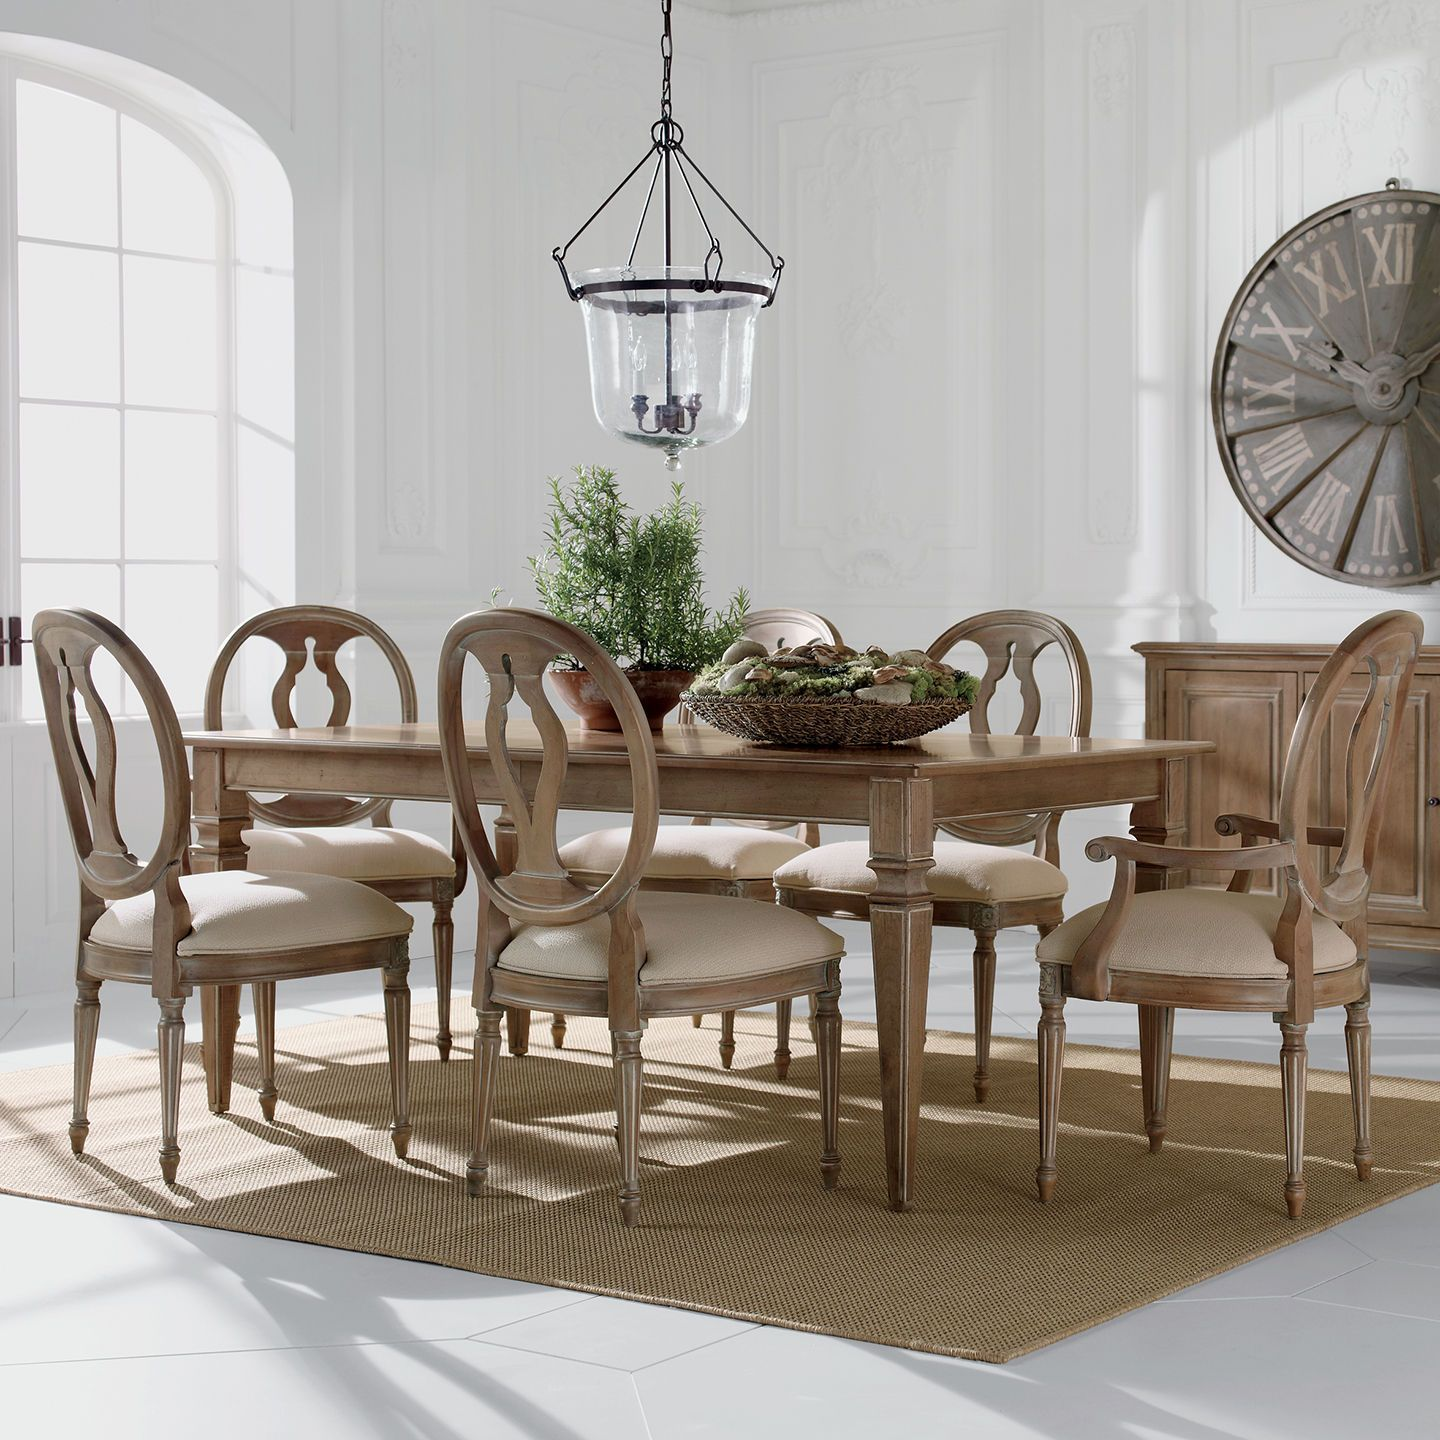 Ethan Allen Neutral Dining Room Avery Table With Margaux Chairs